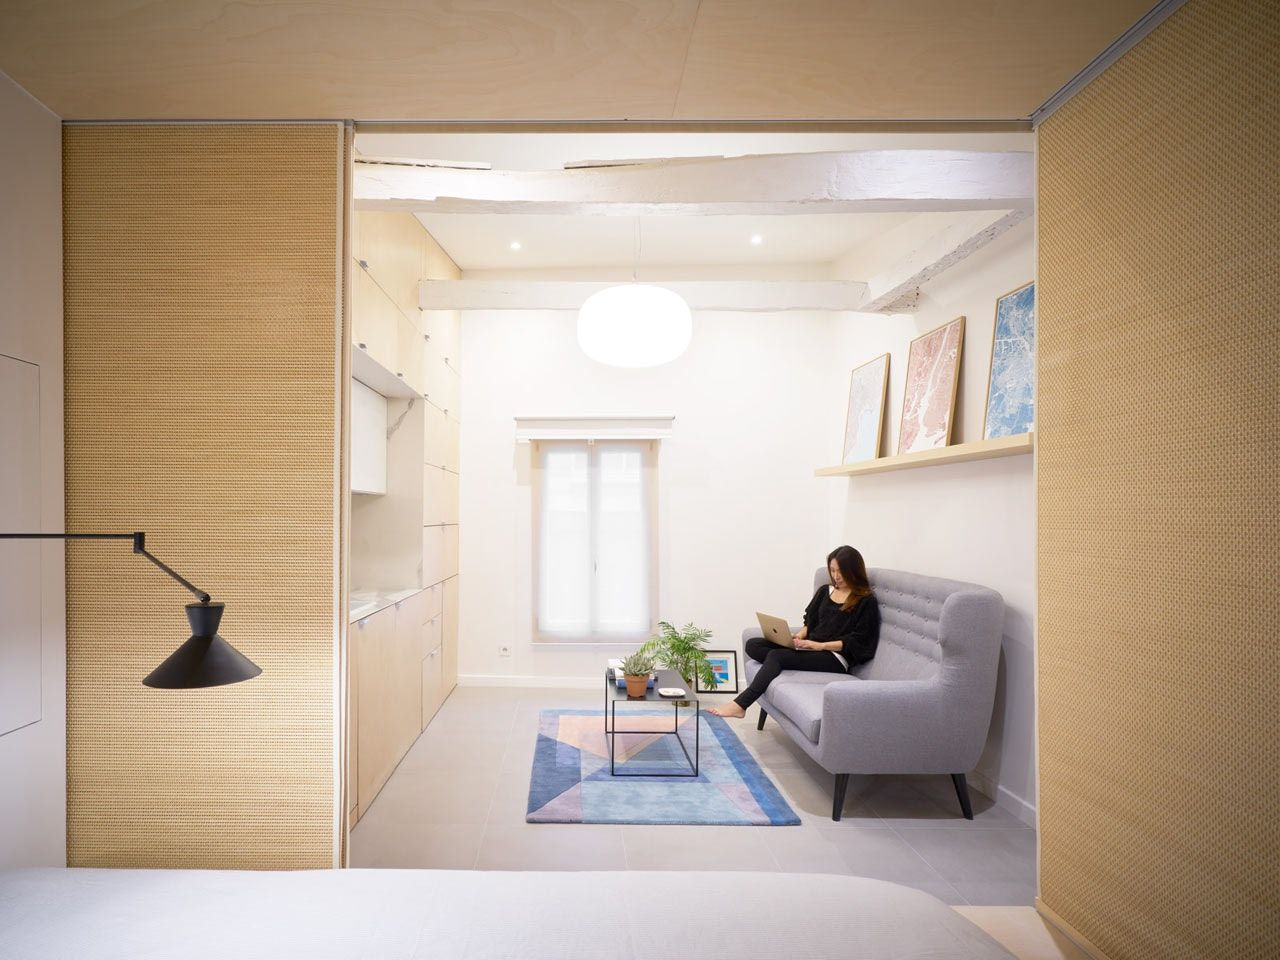 A Tiny Paris Apartment Does It All In 345 Square Feet Micro Apartment Apartment Renovation Modern Renovation